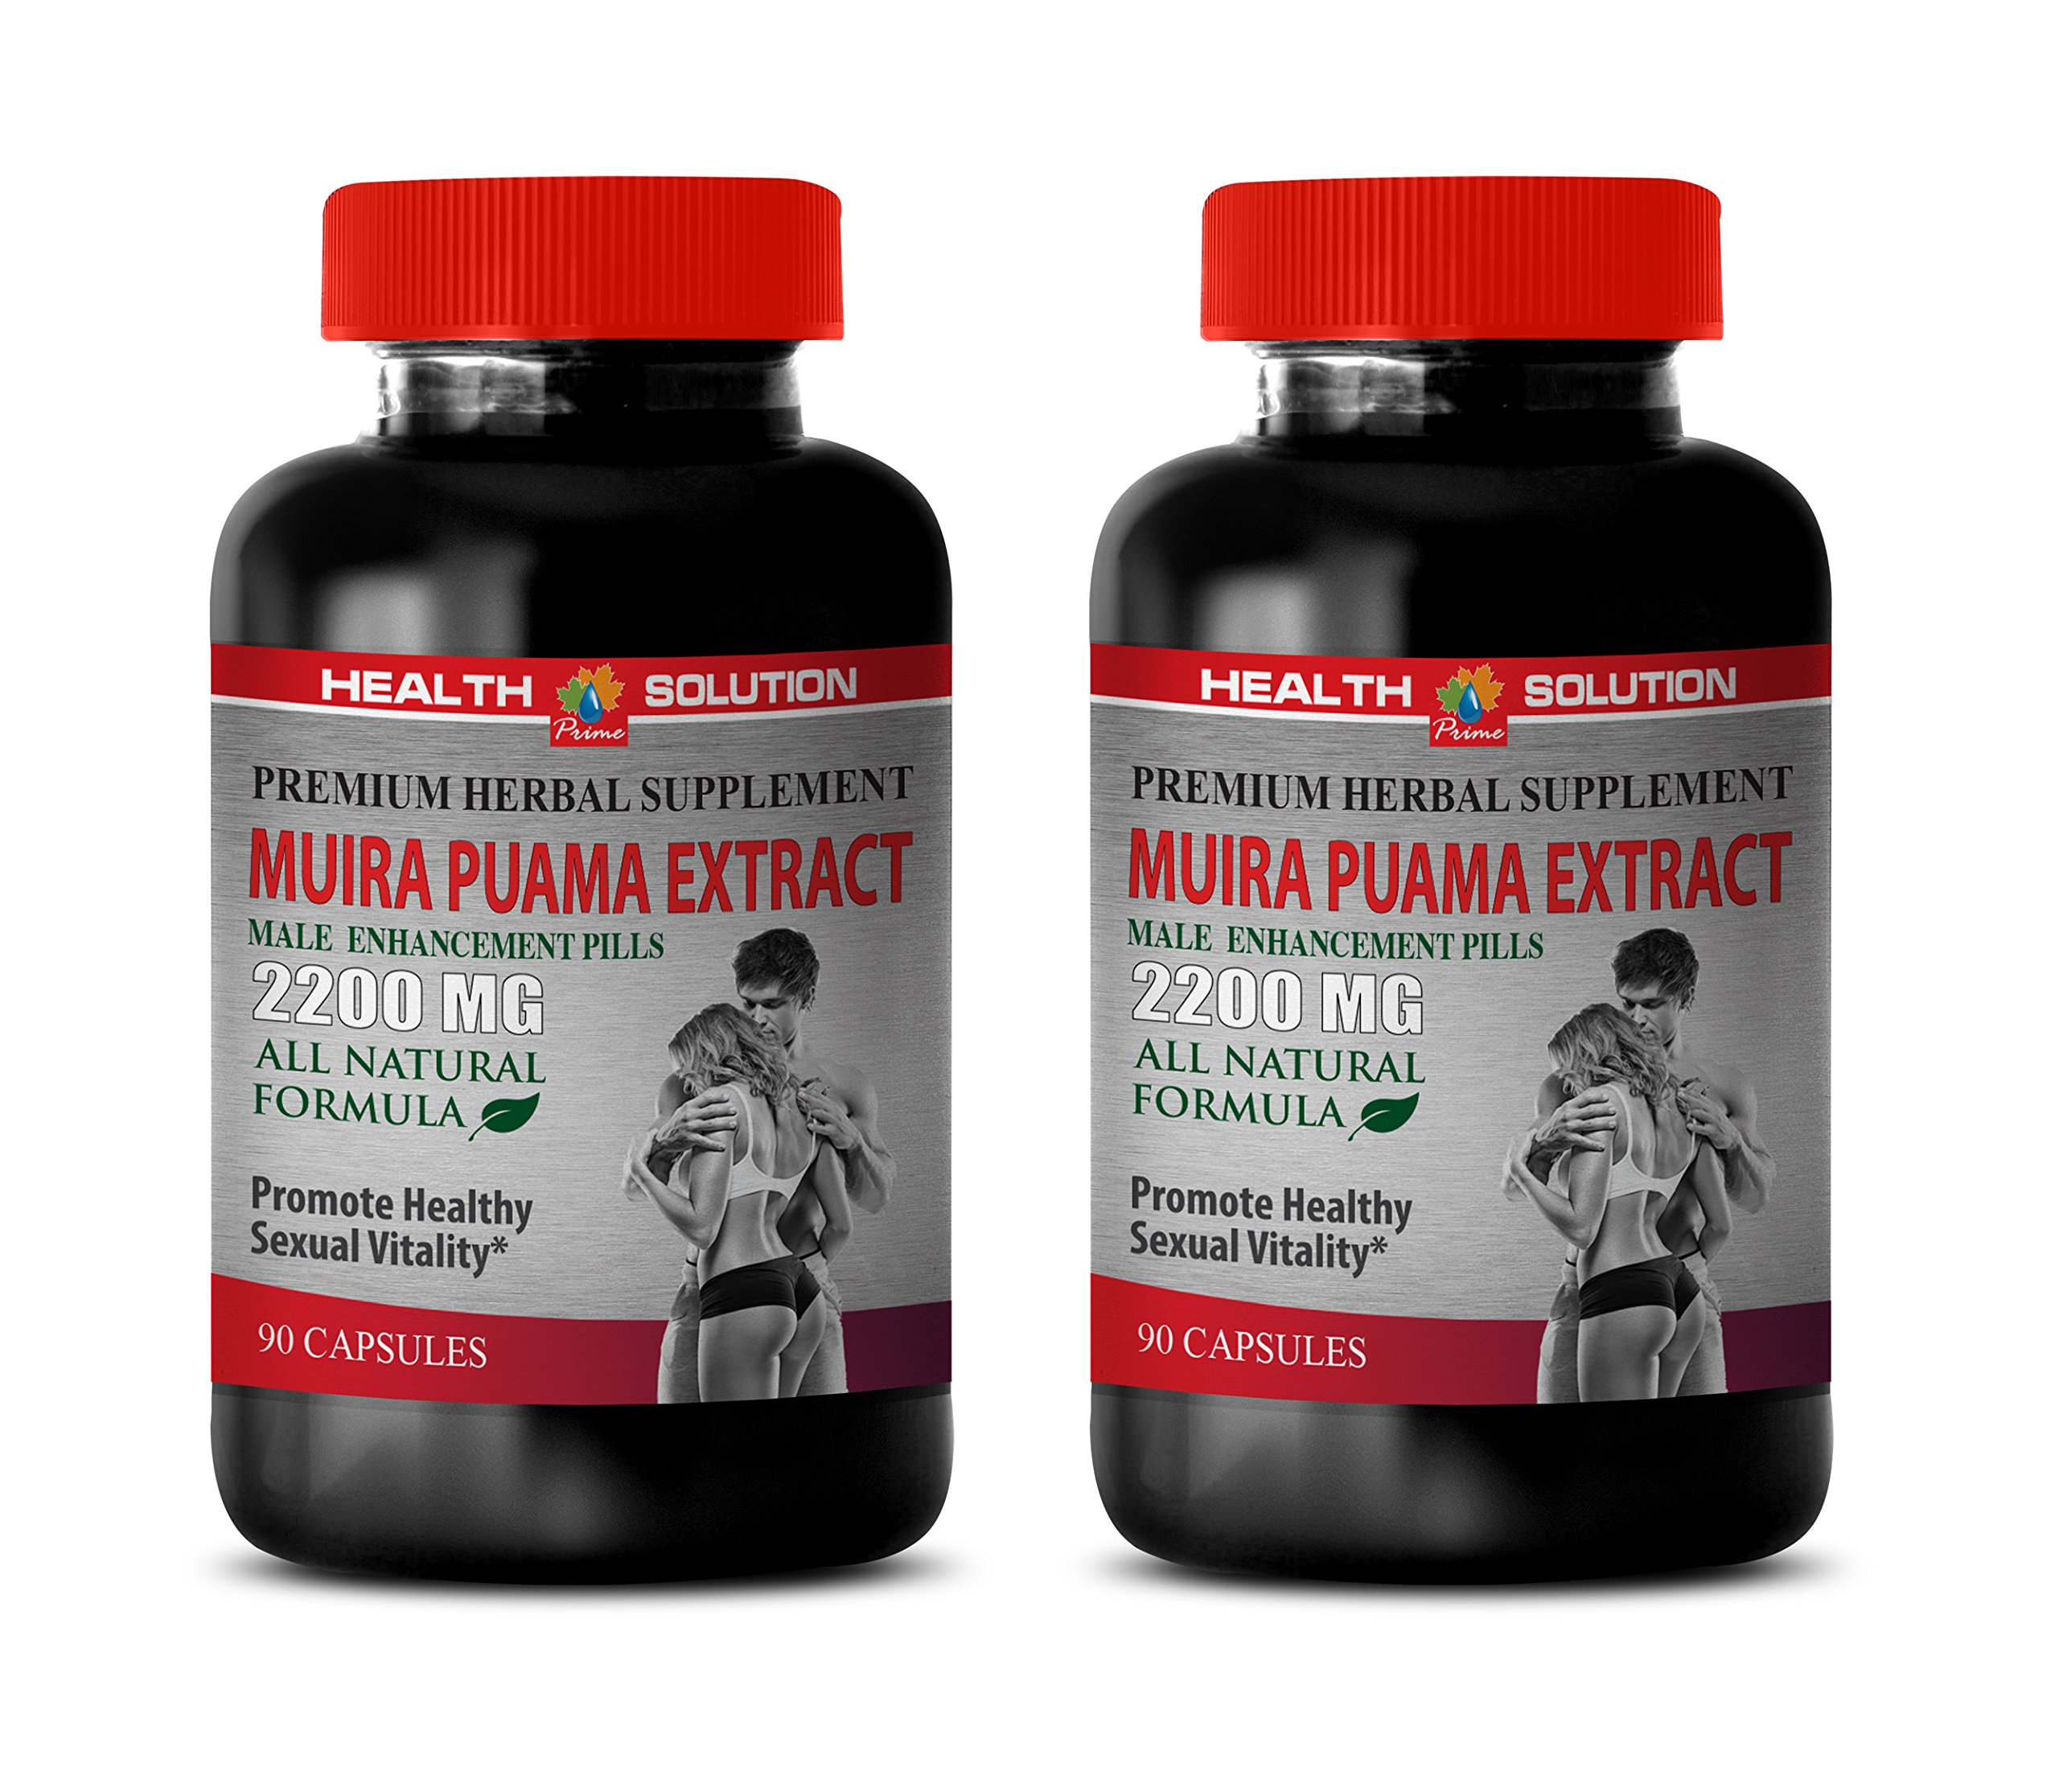 Male Libido Booster Natural - Muira PUAMA Extract 2200 Mg - Male Enhancement Pills - Energy Booster Pills - 2 Bottles 180 Capsules